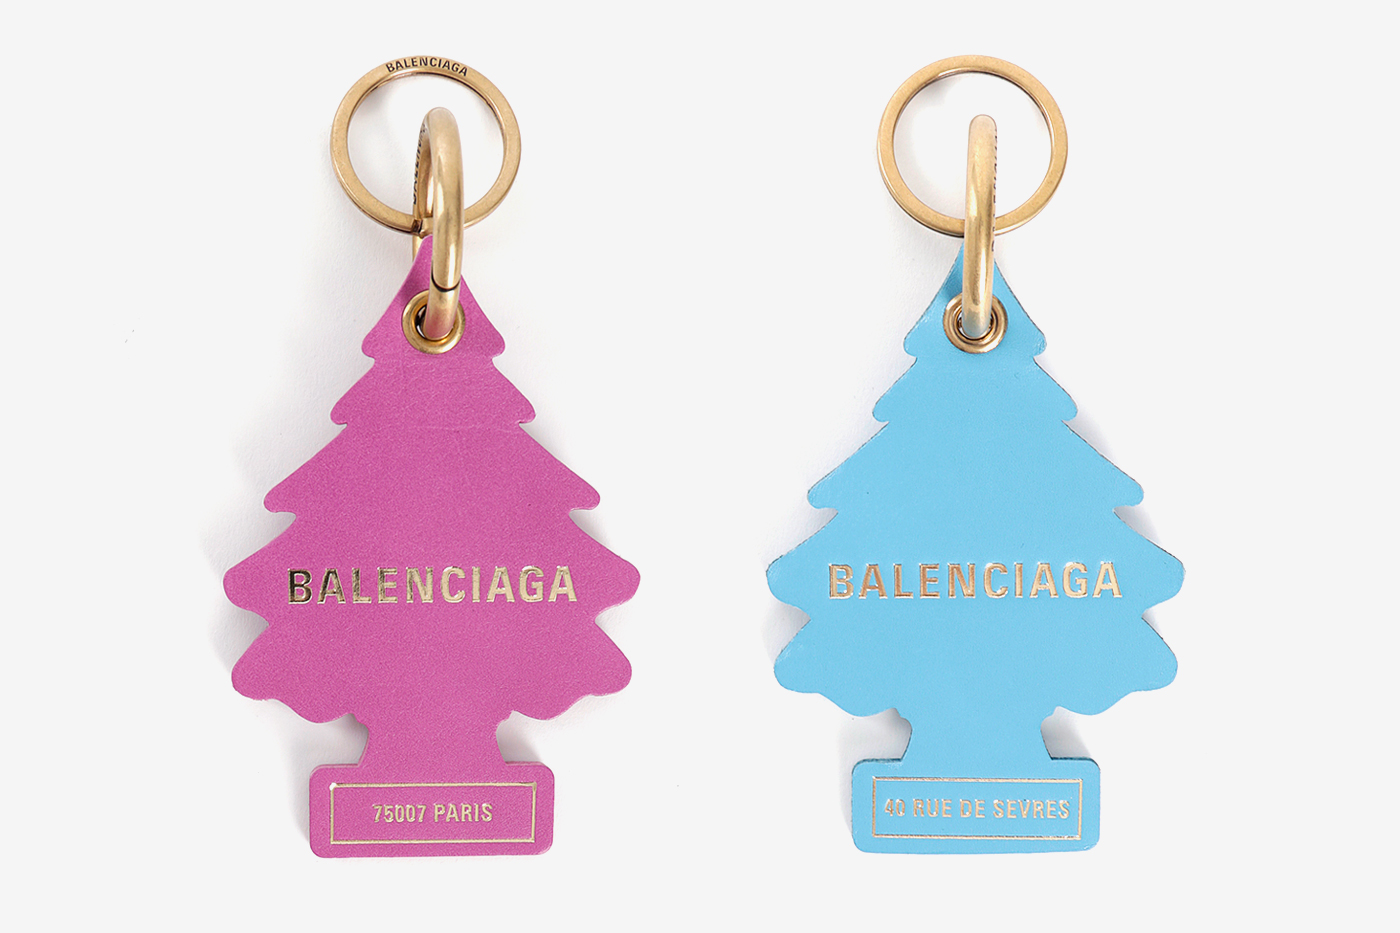 Balenciaga Fall Winter 2018 Pine Tree Keychains release info accessories